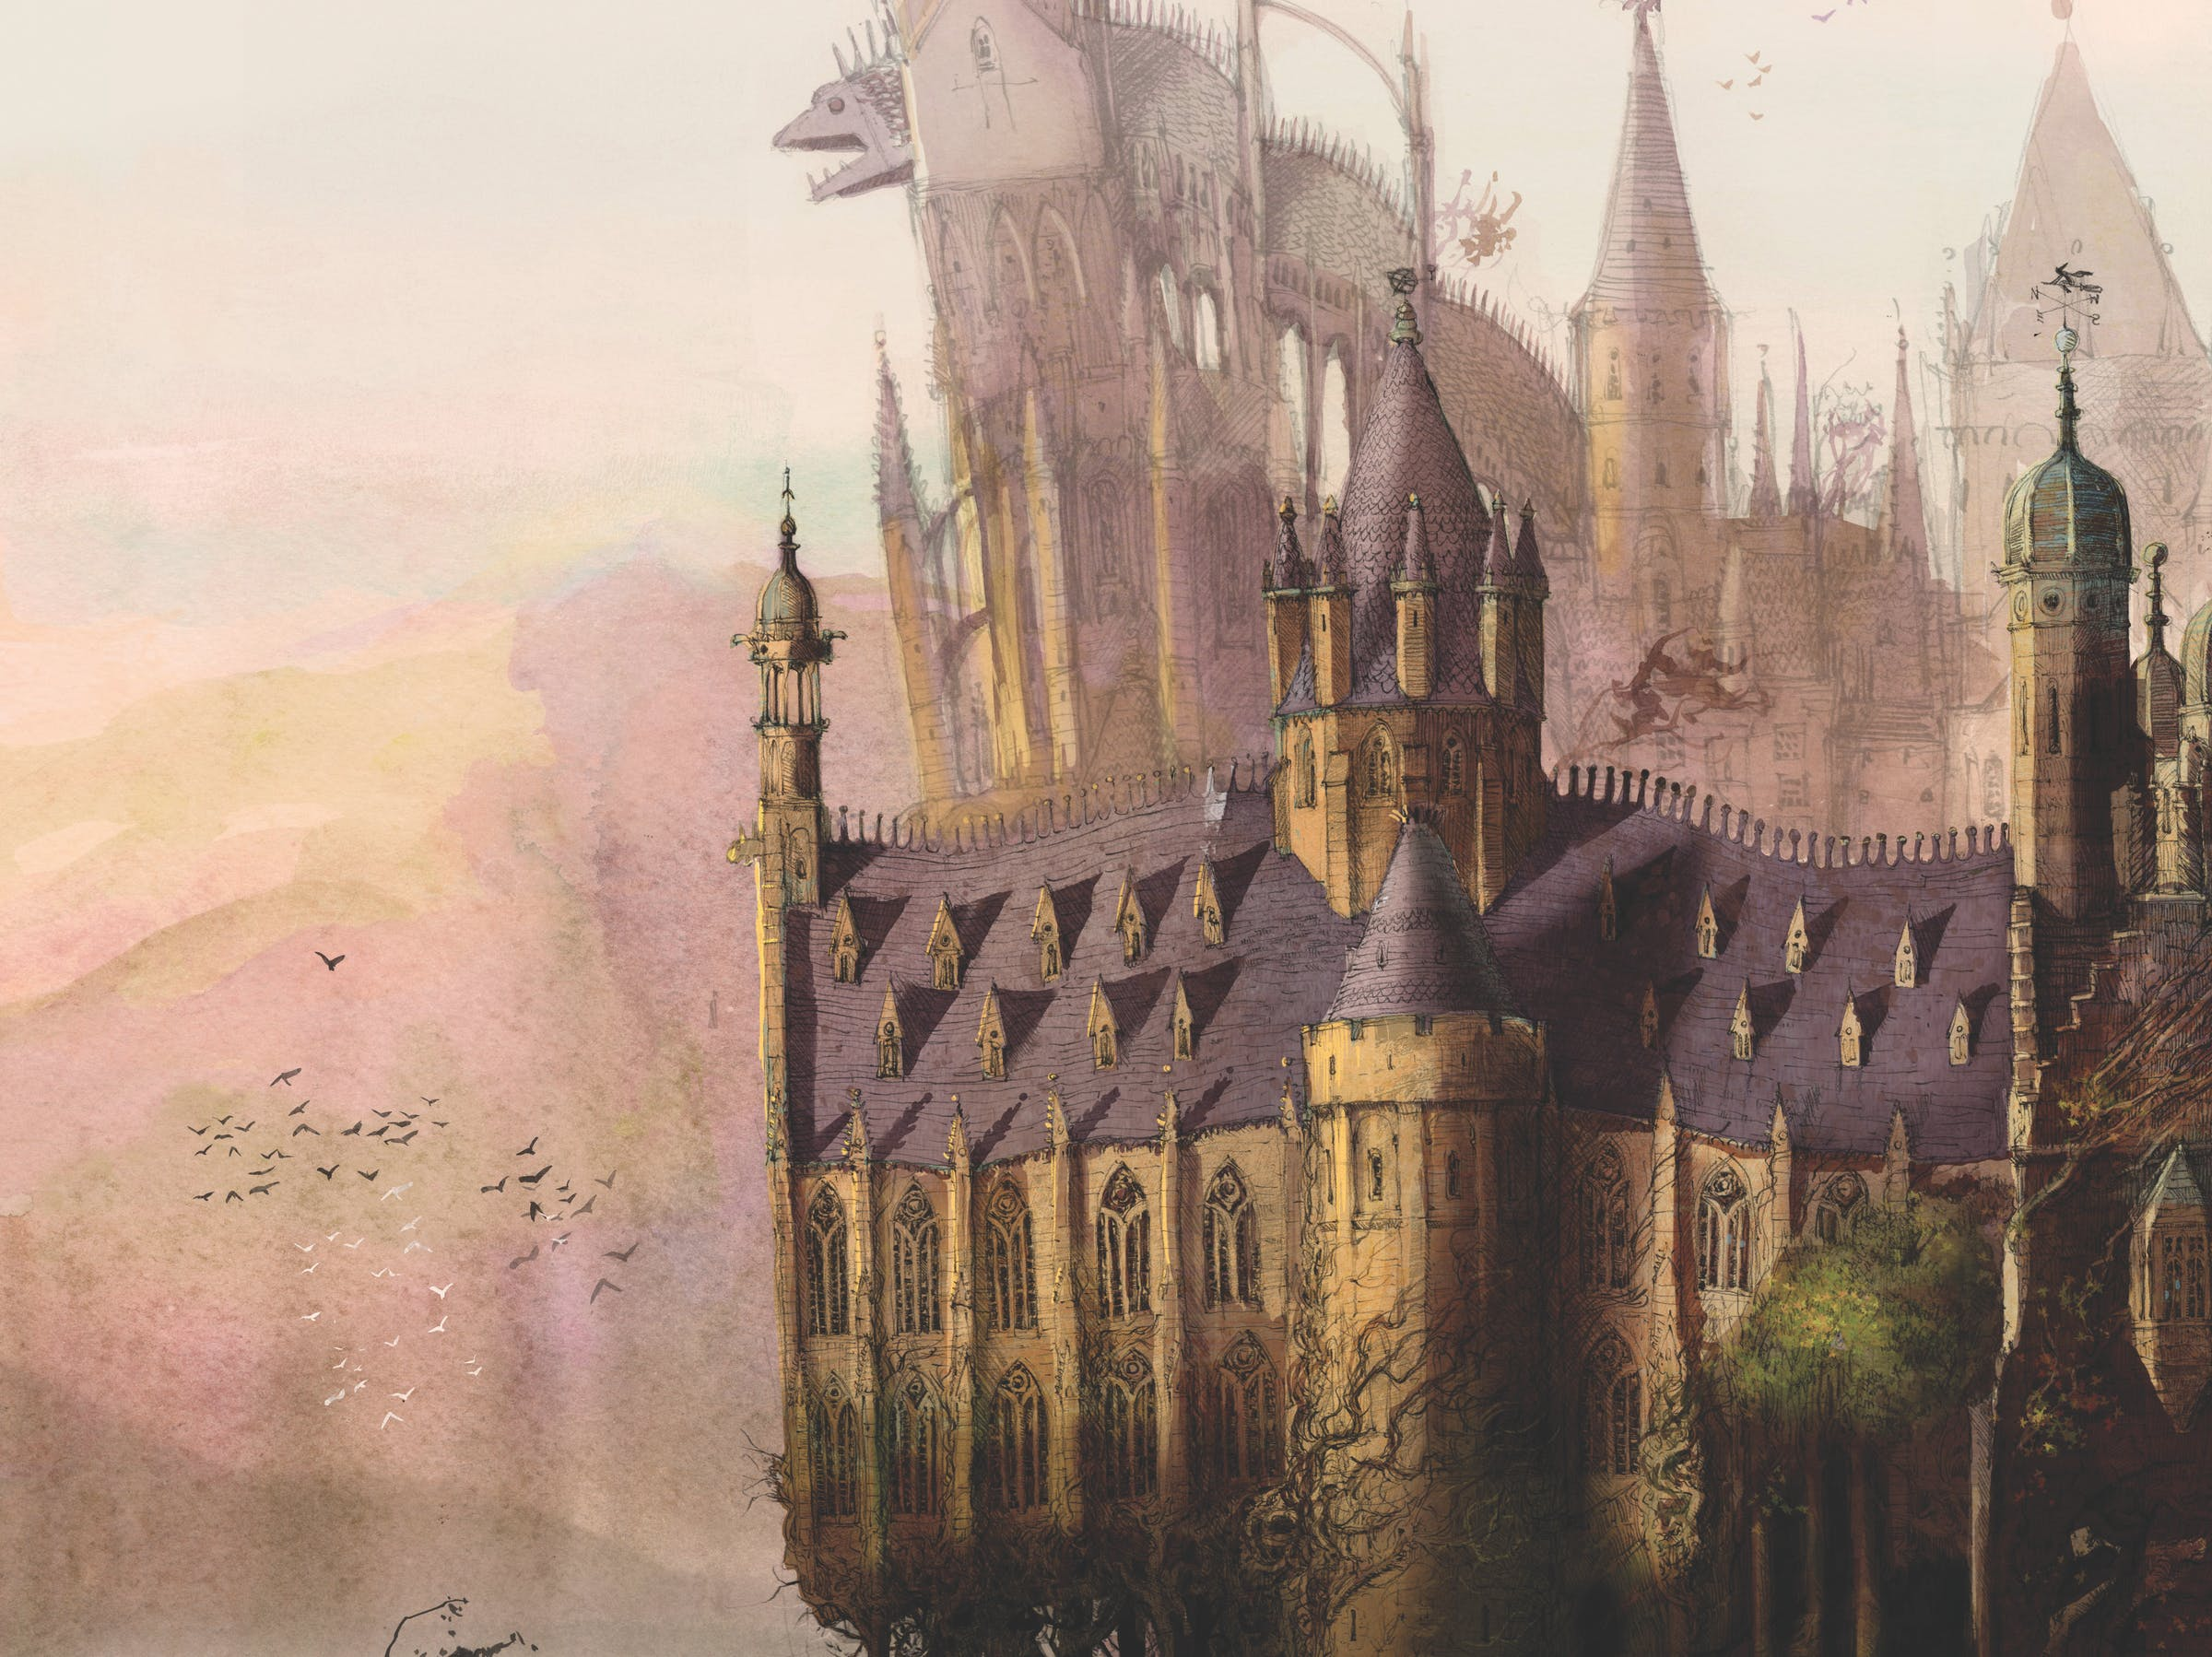 Hogwarts (Illustration by Jim Kay)